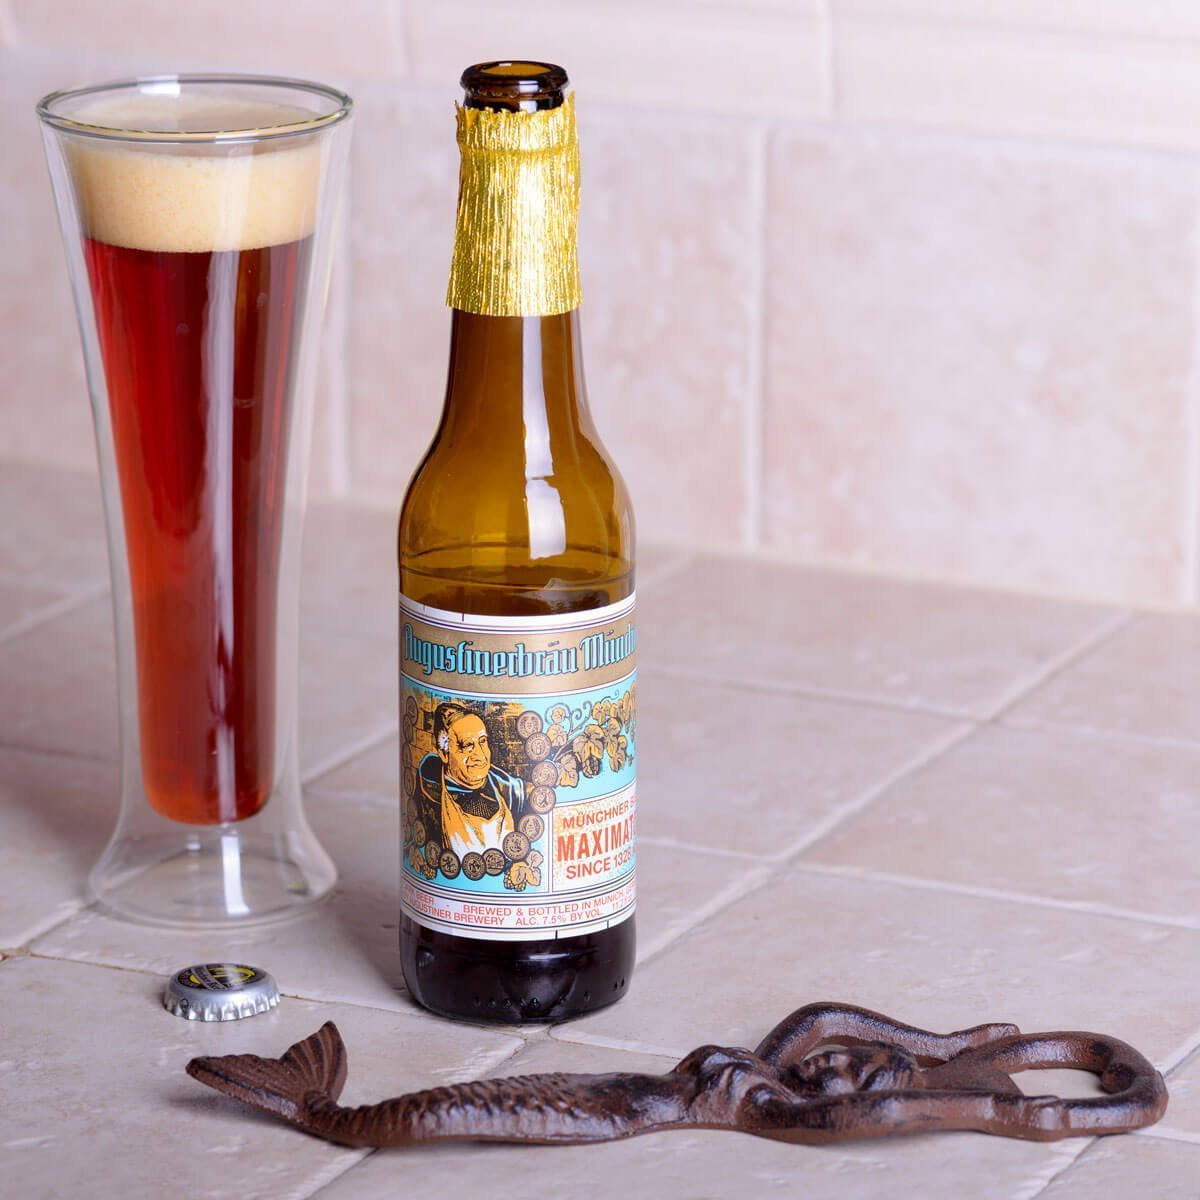 Augustiner Bräu Maximator, a Doppelbock brewed by Augustiner-Bräu Wagner KG blends plum, raisin, and cherry with chocolate, brown bread, and booze.